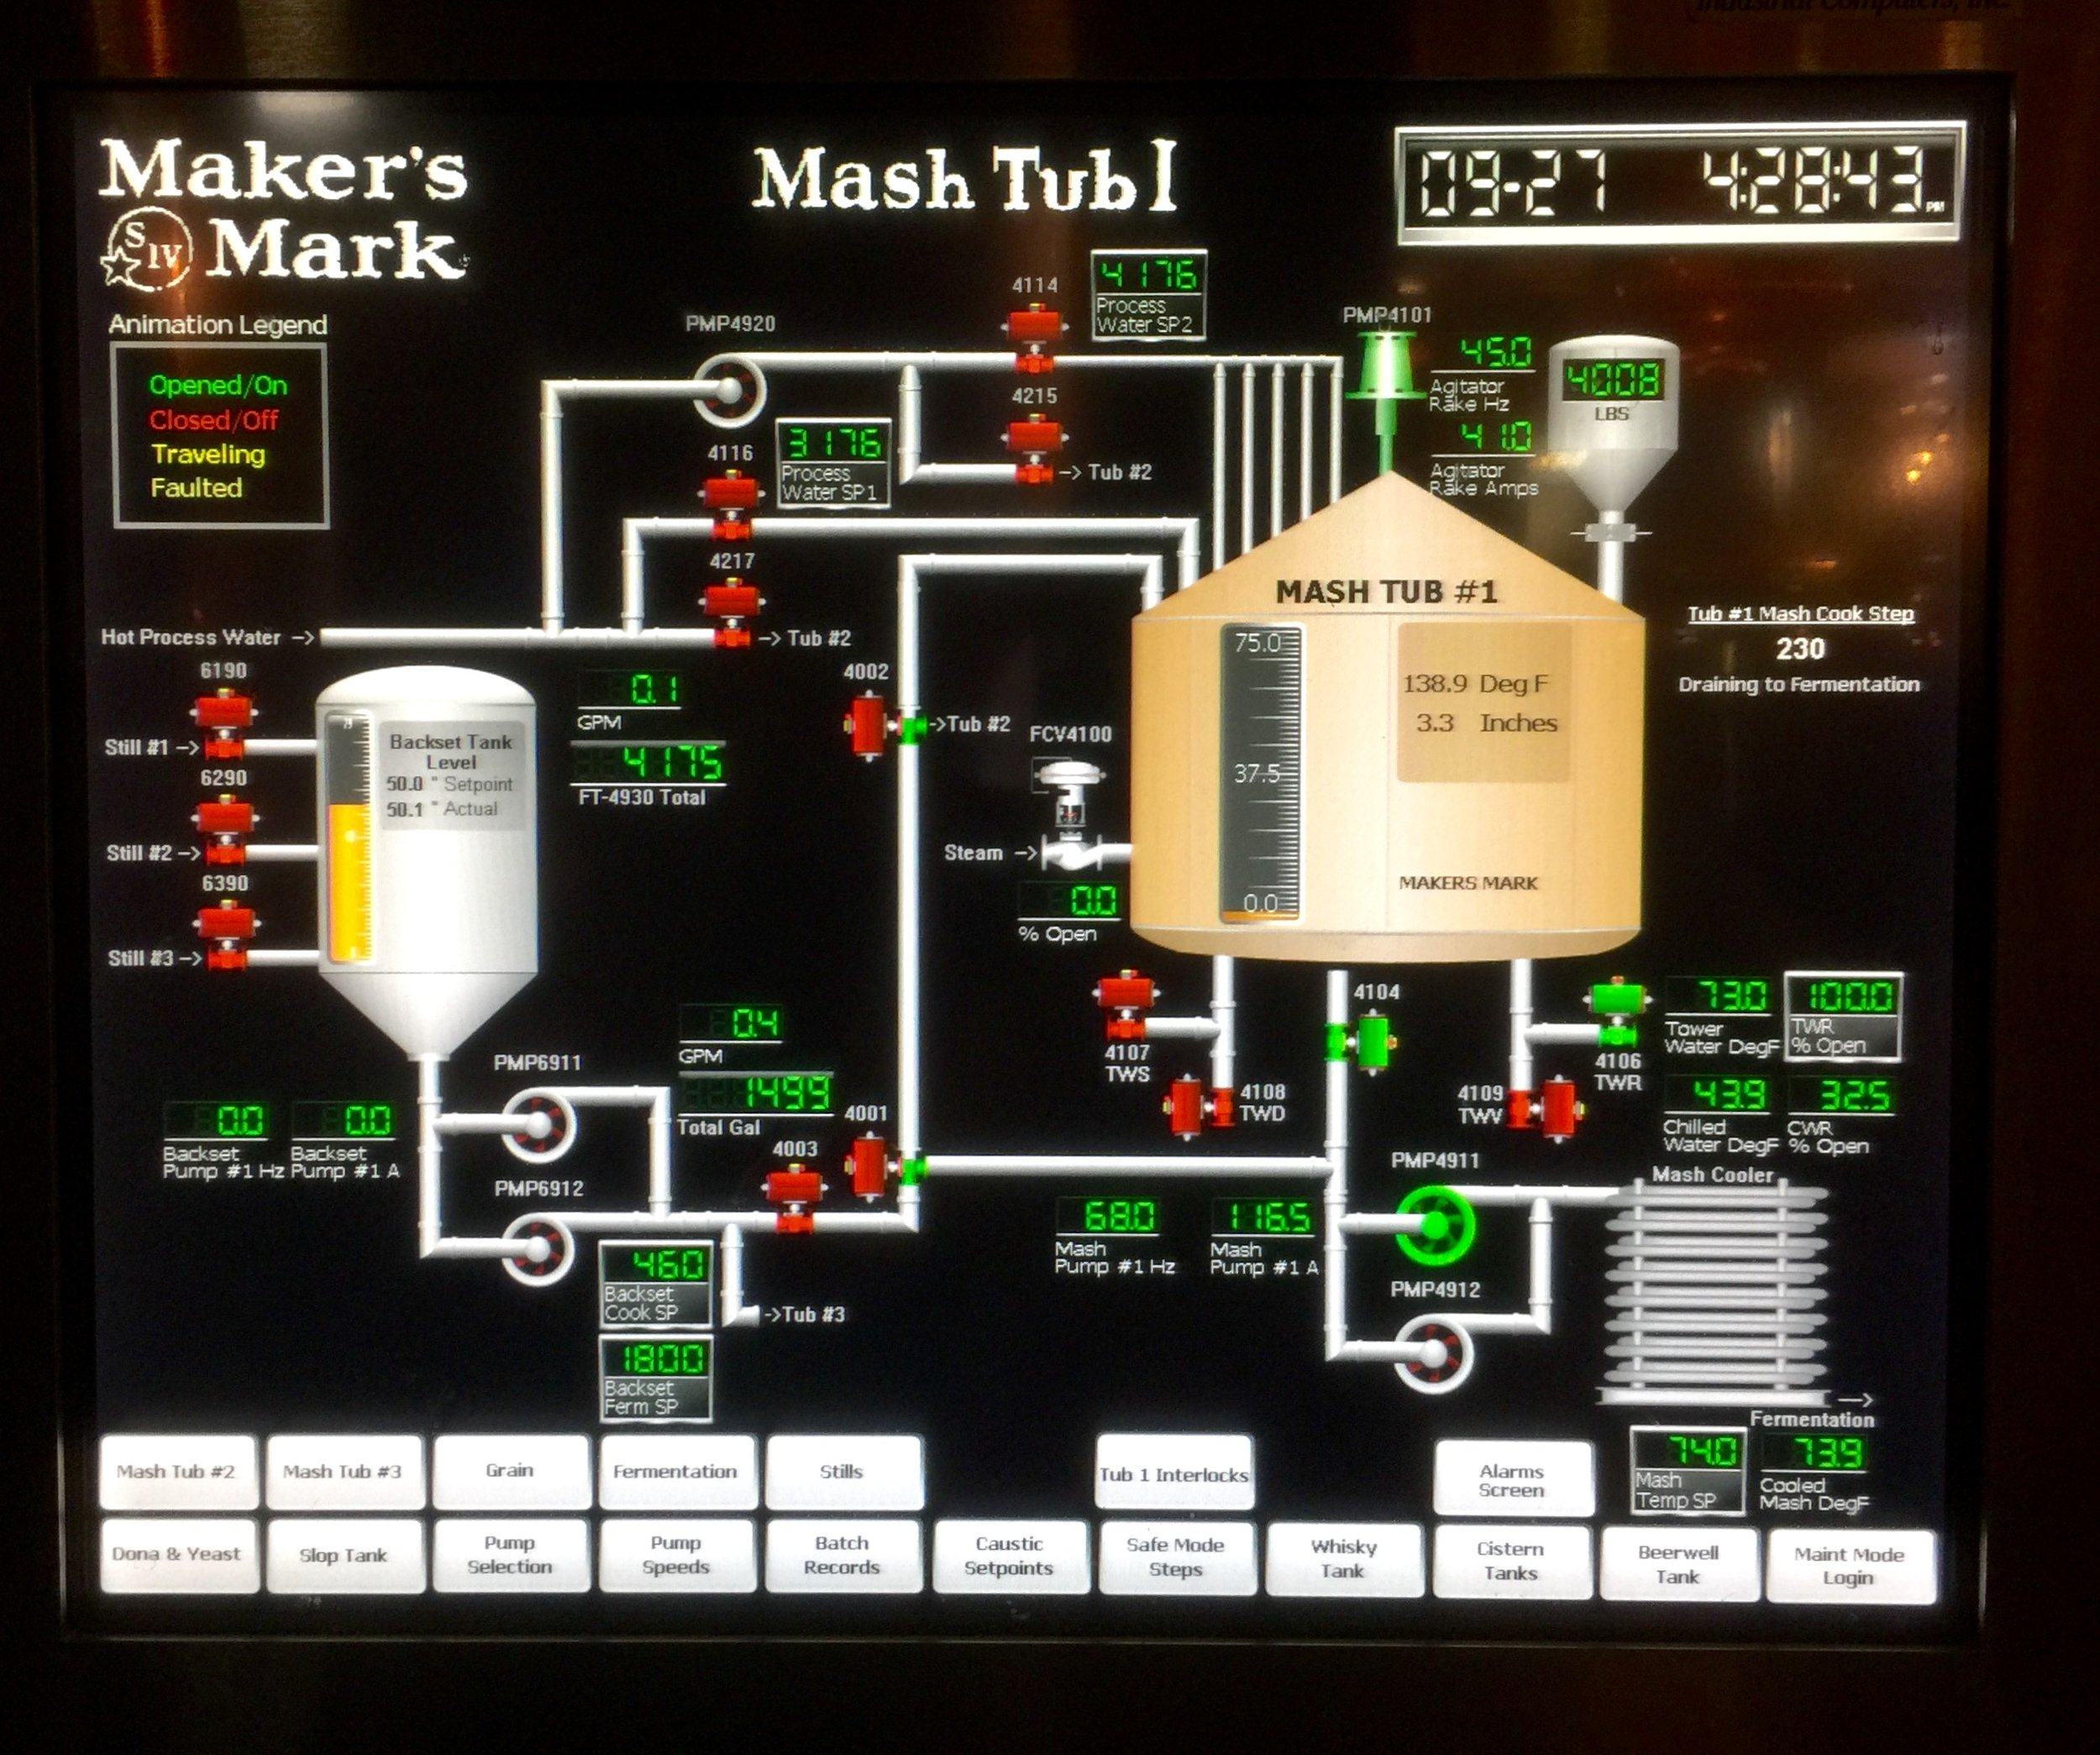 Like most modern distilleries, everything is controlled by a computer.  Here's a screen shot of what was going on in Mash Tub 1 when we visited Maker's Mark.